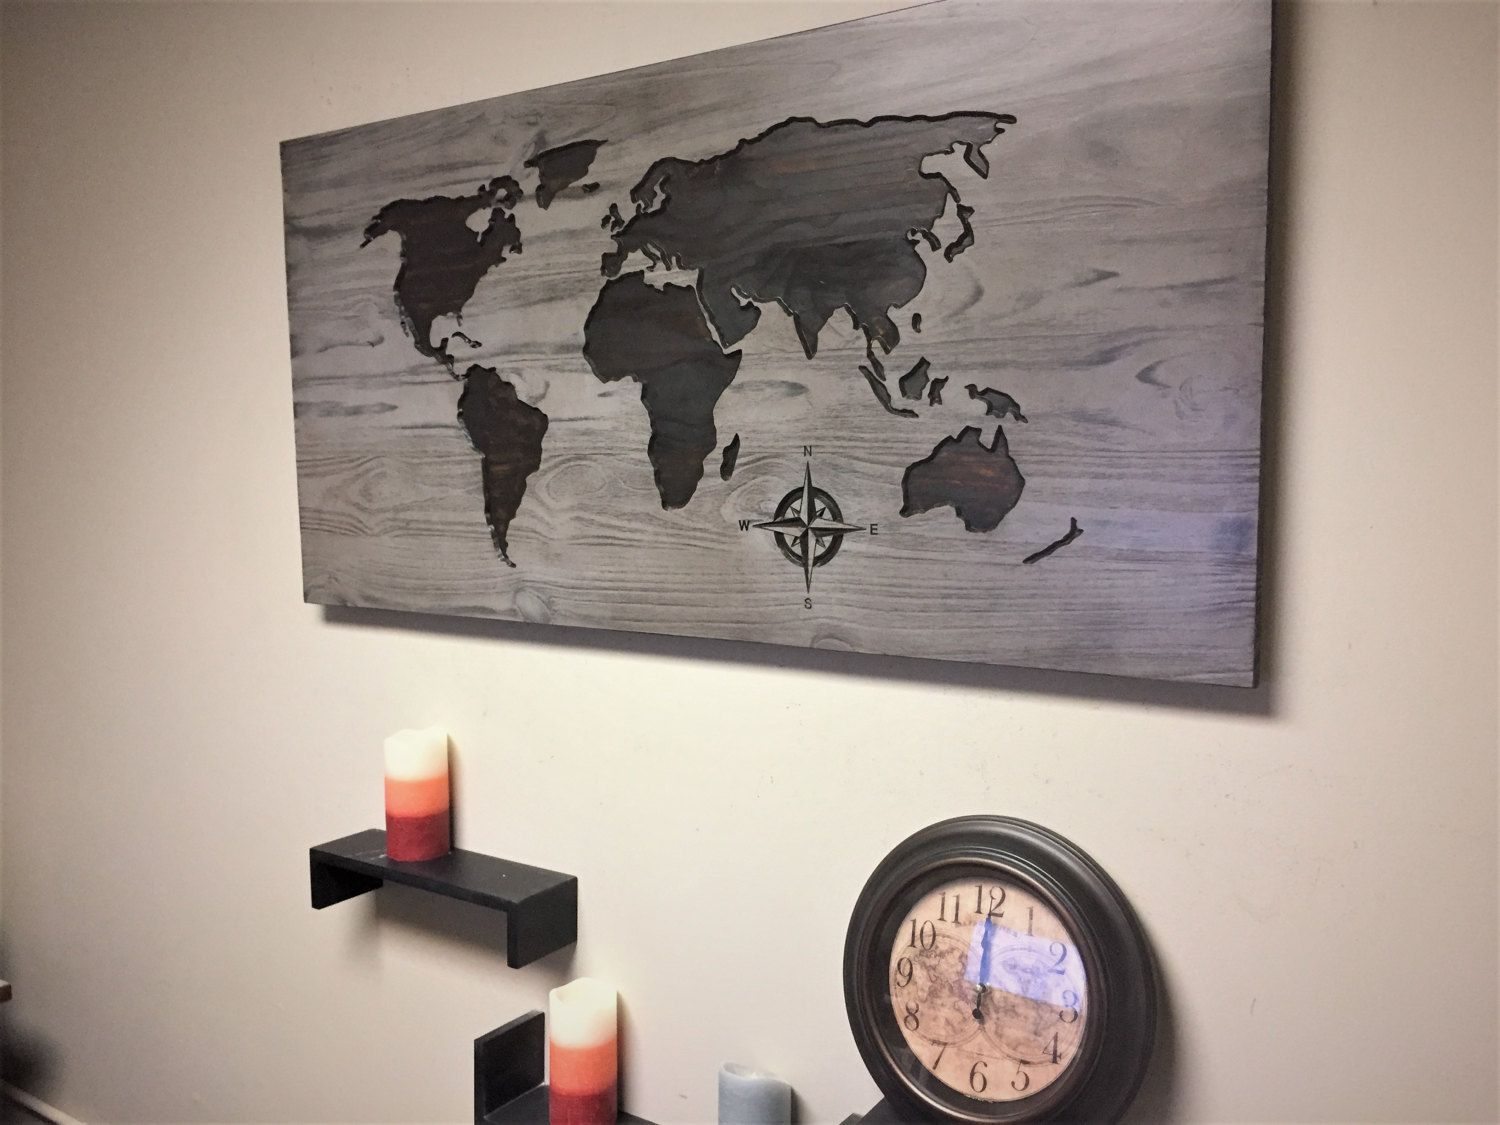 World map home decor carved wood wall art stained wooden map world map home decor carved wood wall art stained wooden map rustic wood gumiabroncs Image collections